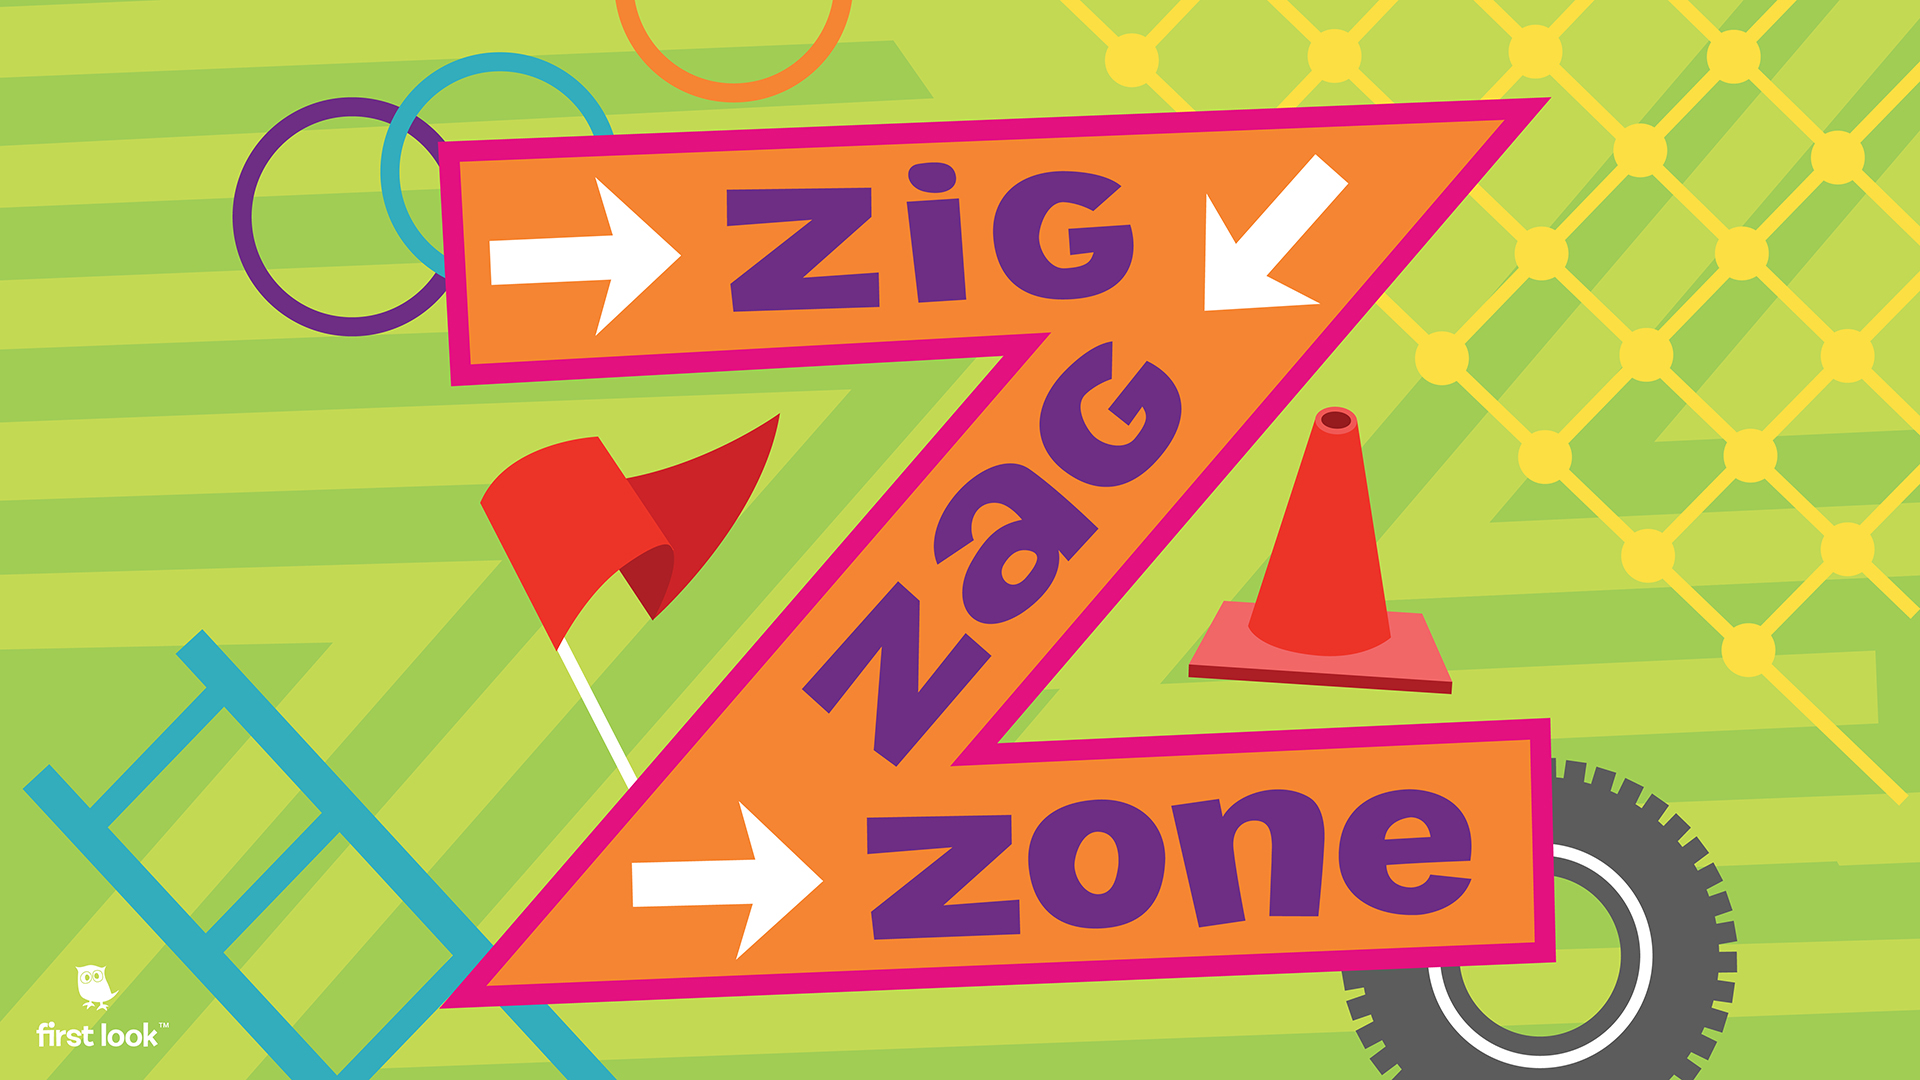 The Rock Church of Fenton, Lake Fenton, Linden, and Byron, Michigan exists to preach the Word of God, Baptize, and Disciple zig zag zone